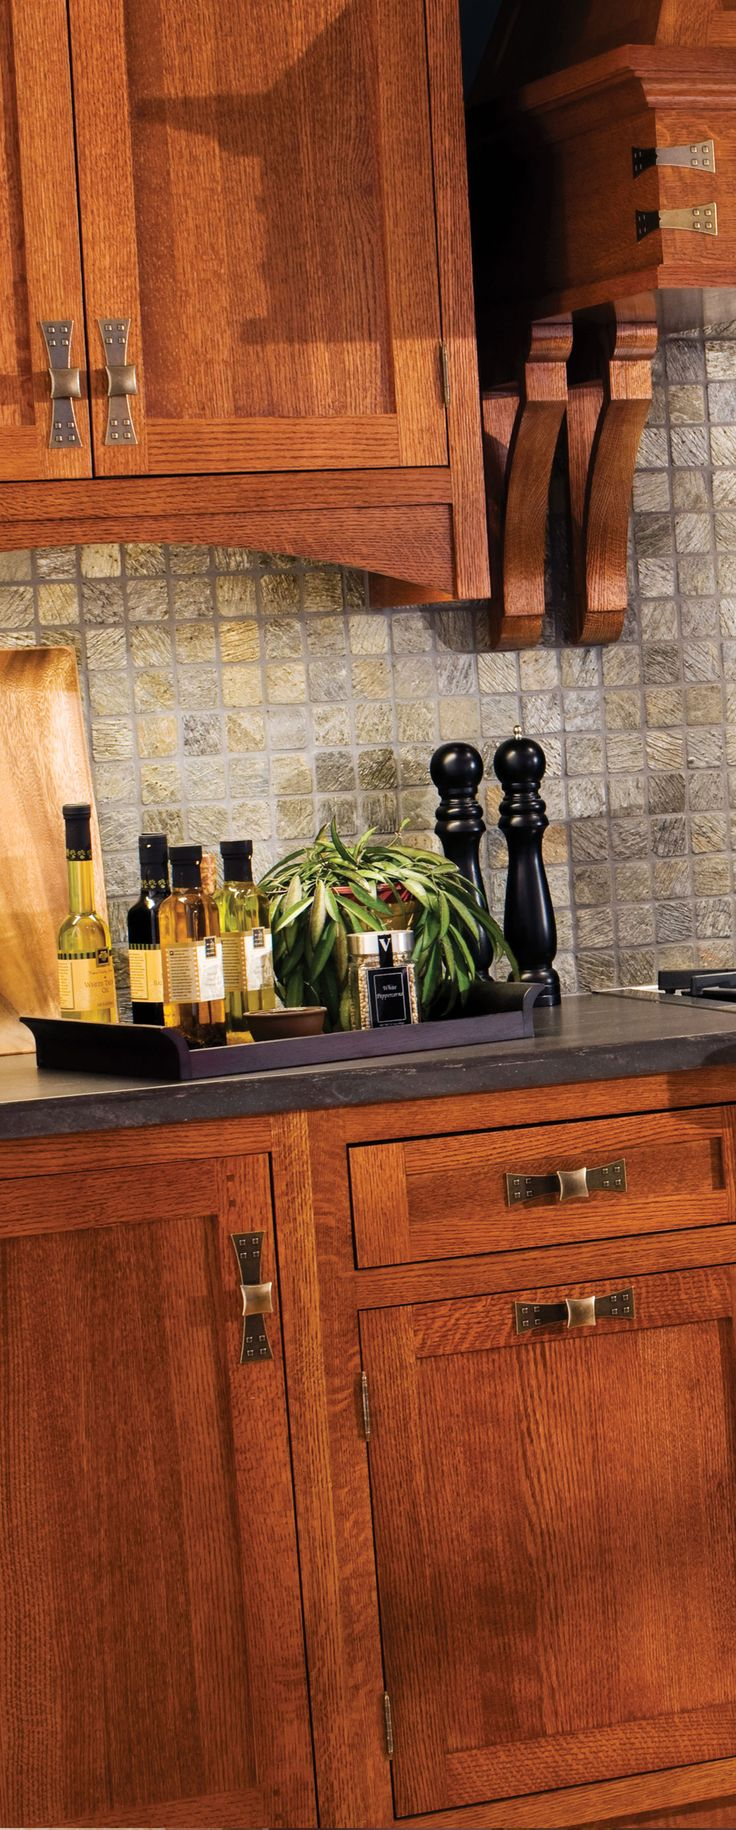 Hand-craftsmanship is prominently featured in a #Craftsman #kitchen and great attention is given to the small details. - Dura Supreme #Cabinetry